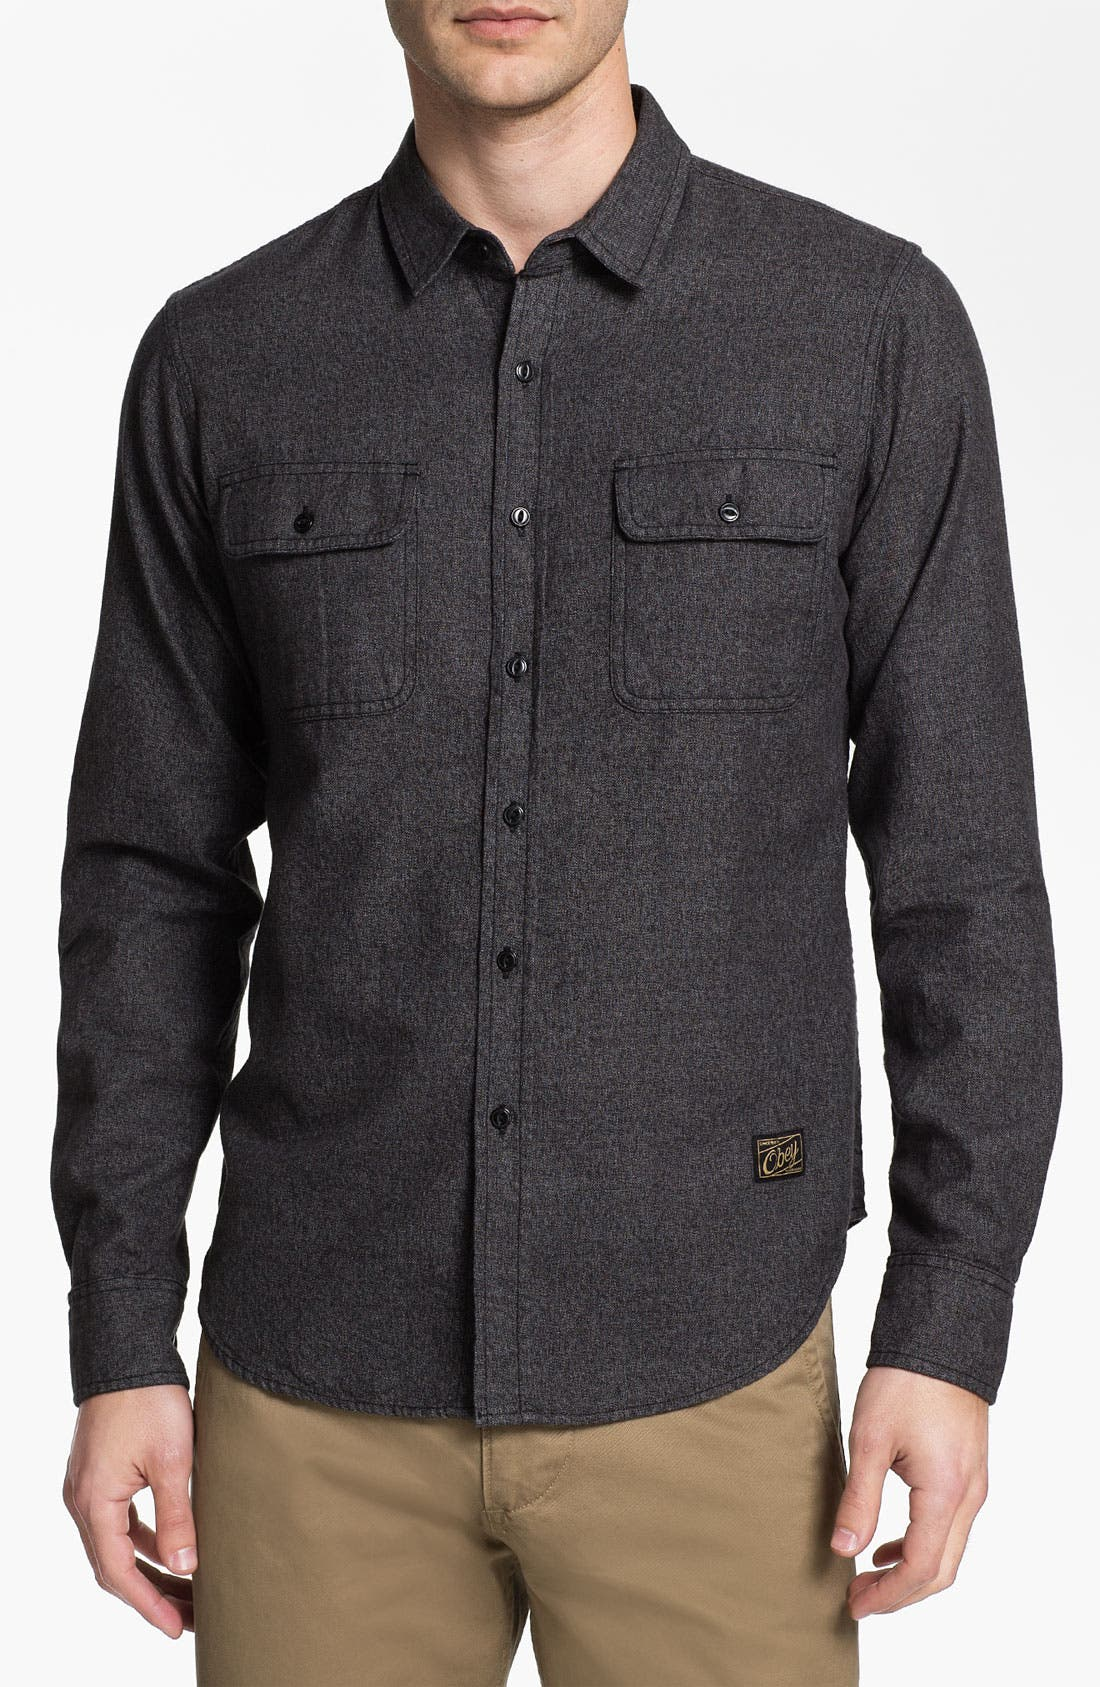 Alternate Image 1 Selected - Obey 'Cameron' Trim Fit Woven Shirt